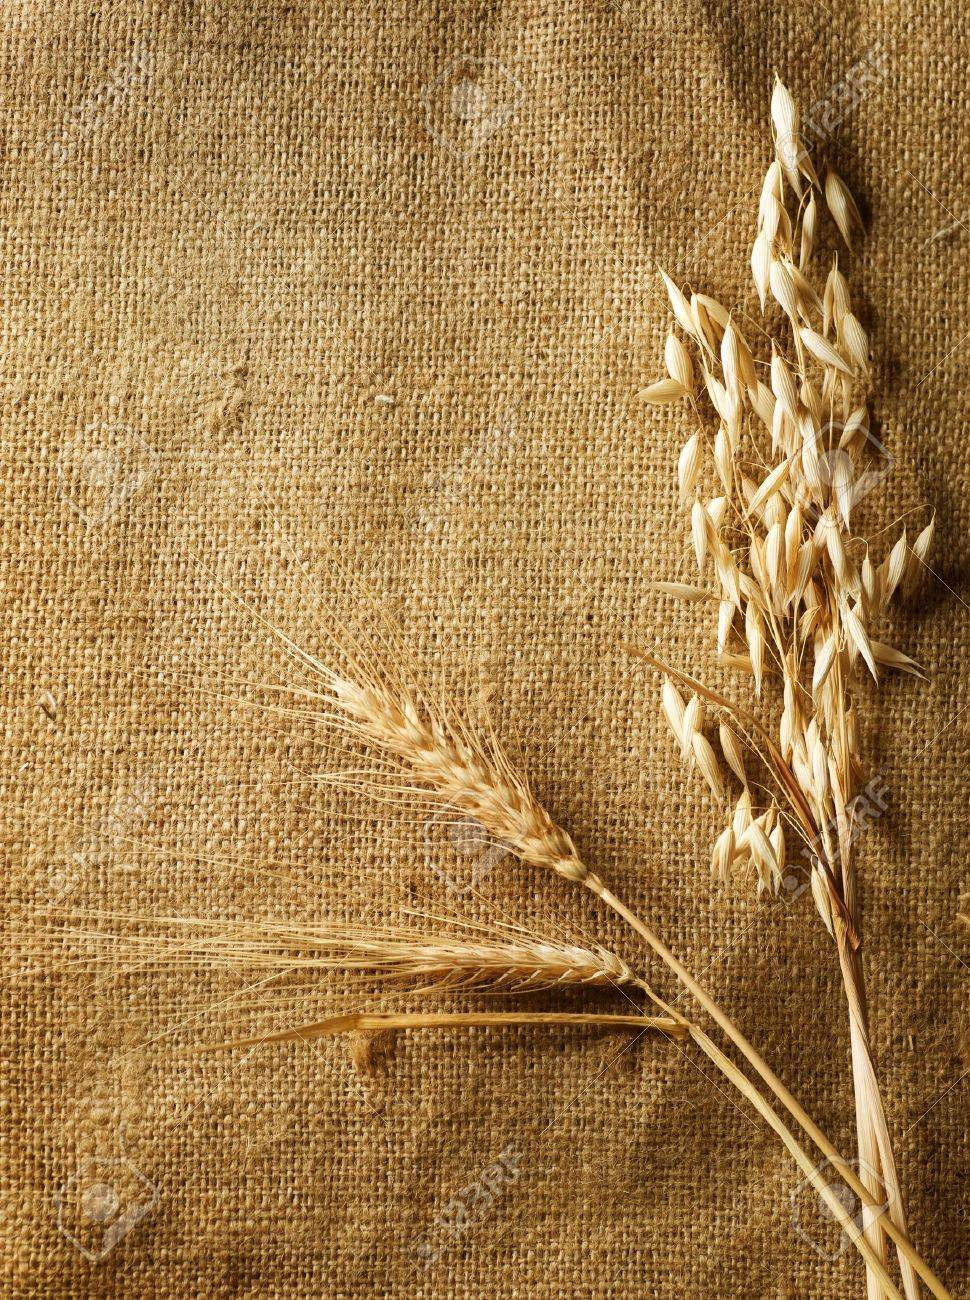 Wheat Ears on Burlap background.Country Style.With copy-space Stock Photo - 7814892